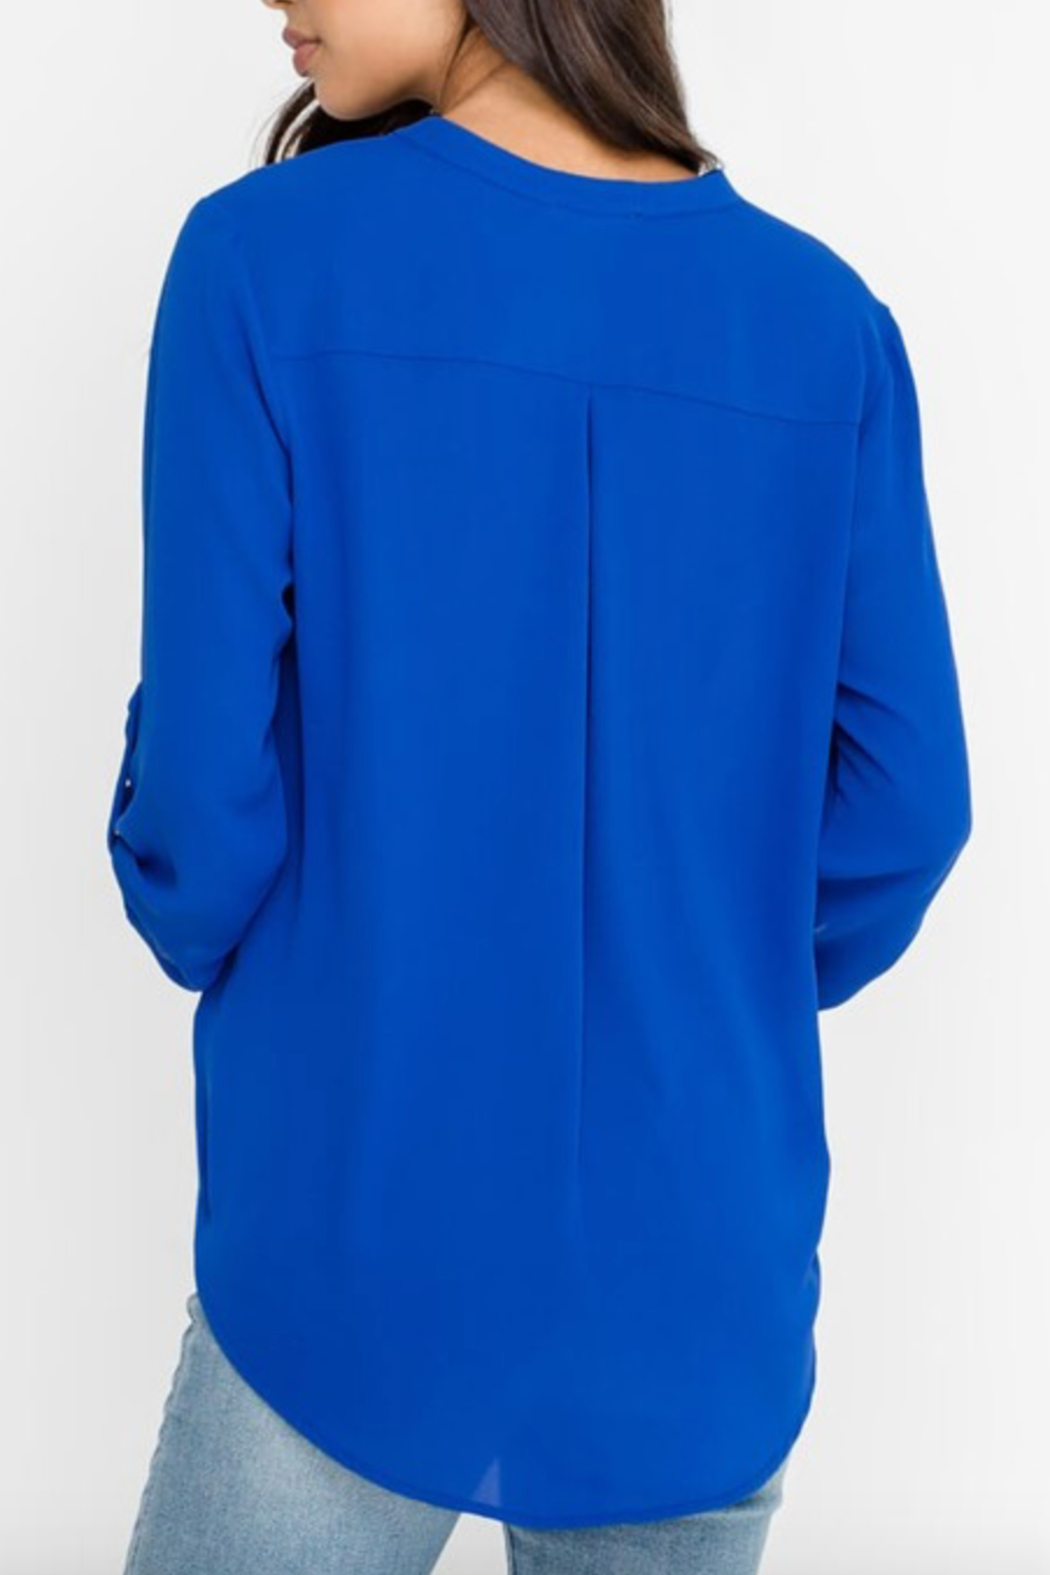 Lush Clothing  Stacey V-Neck Tunic Top - Main Image